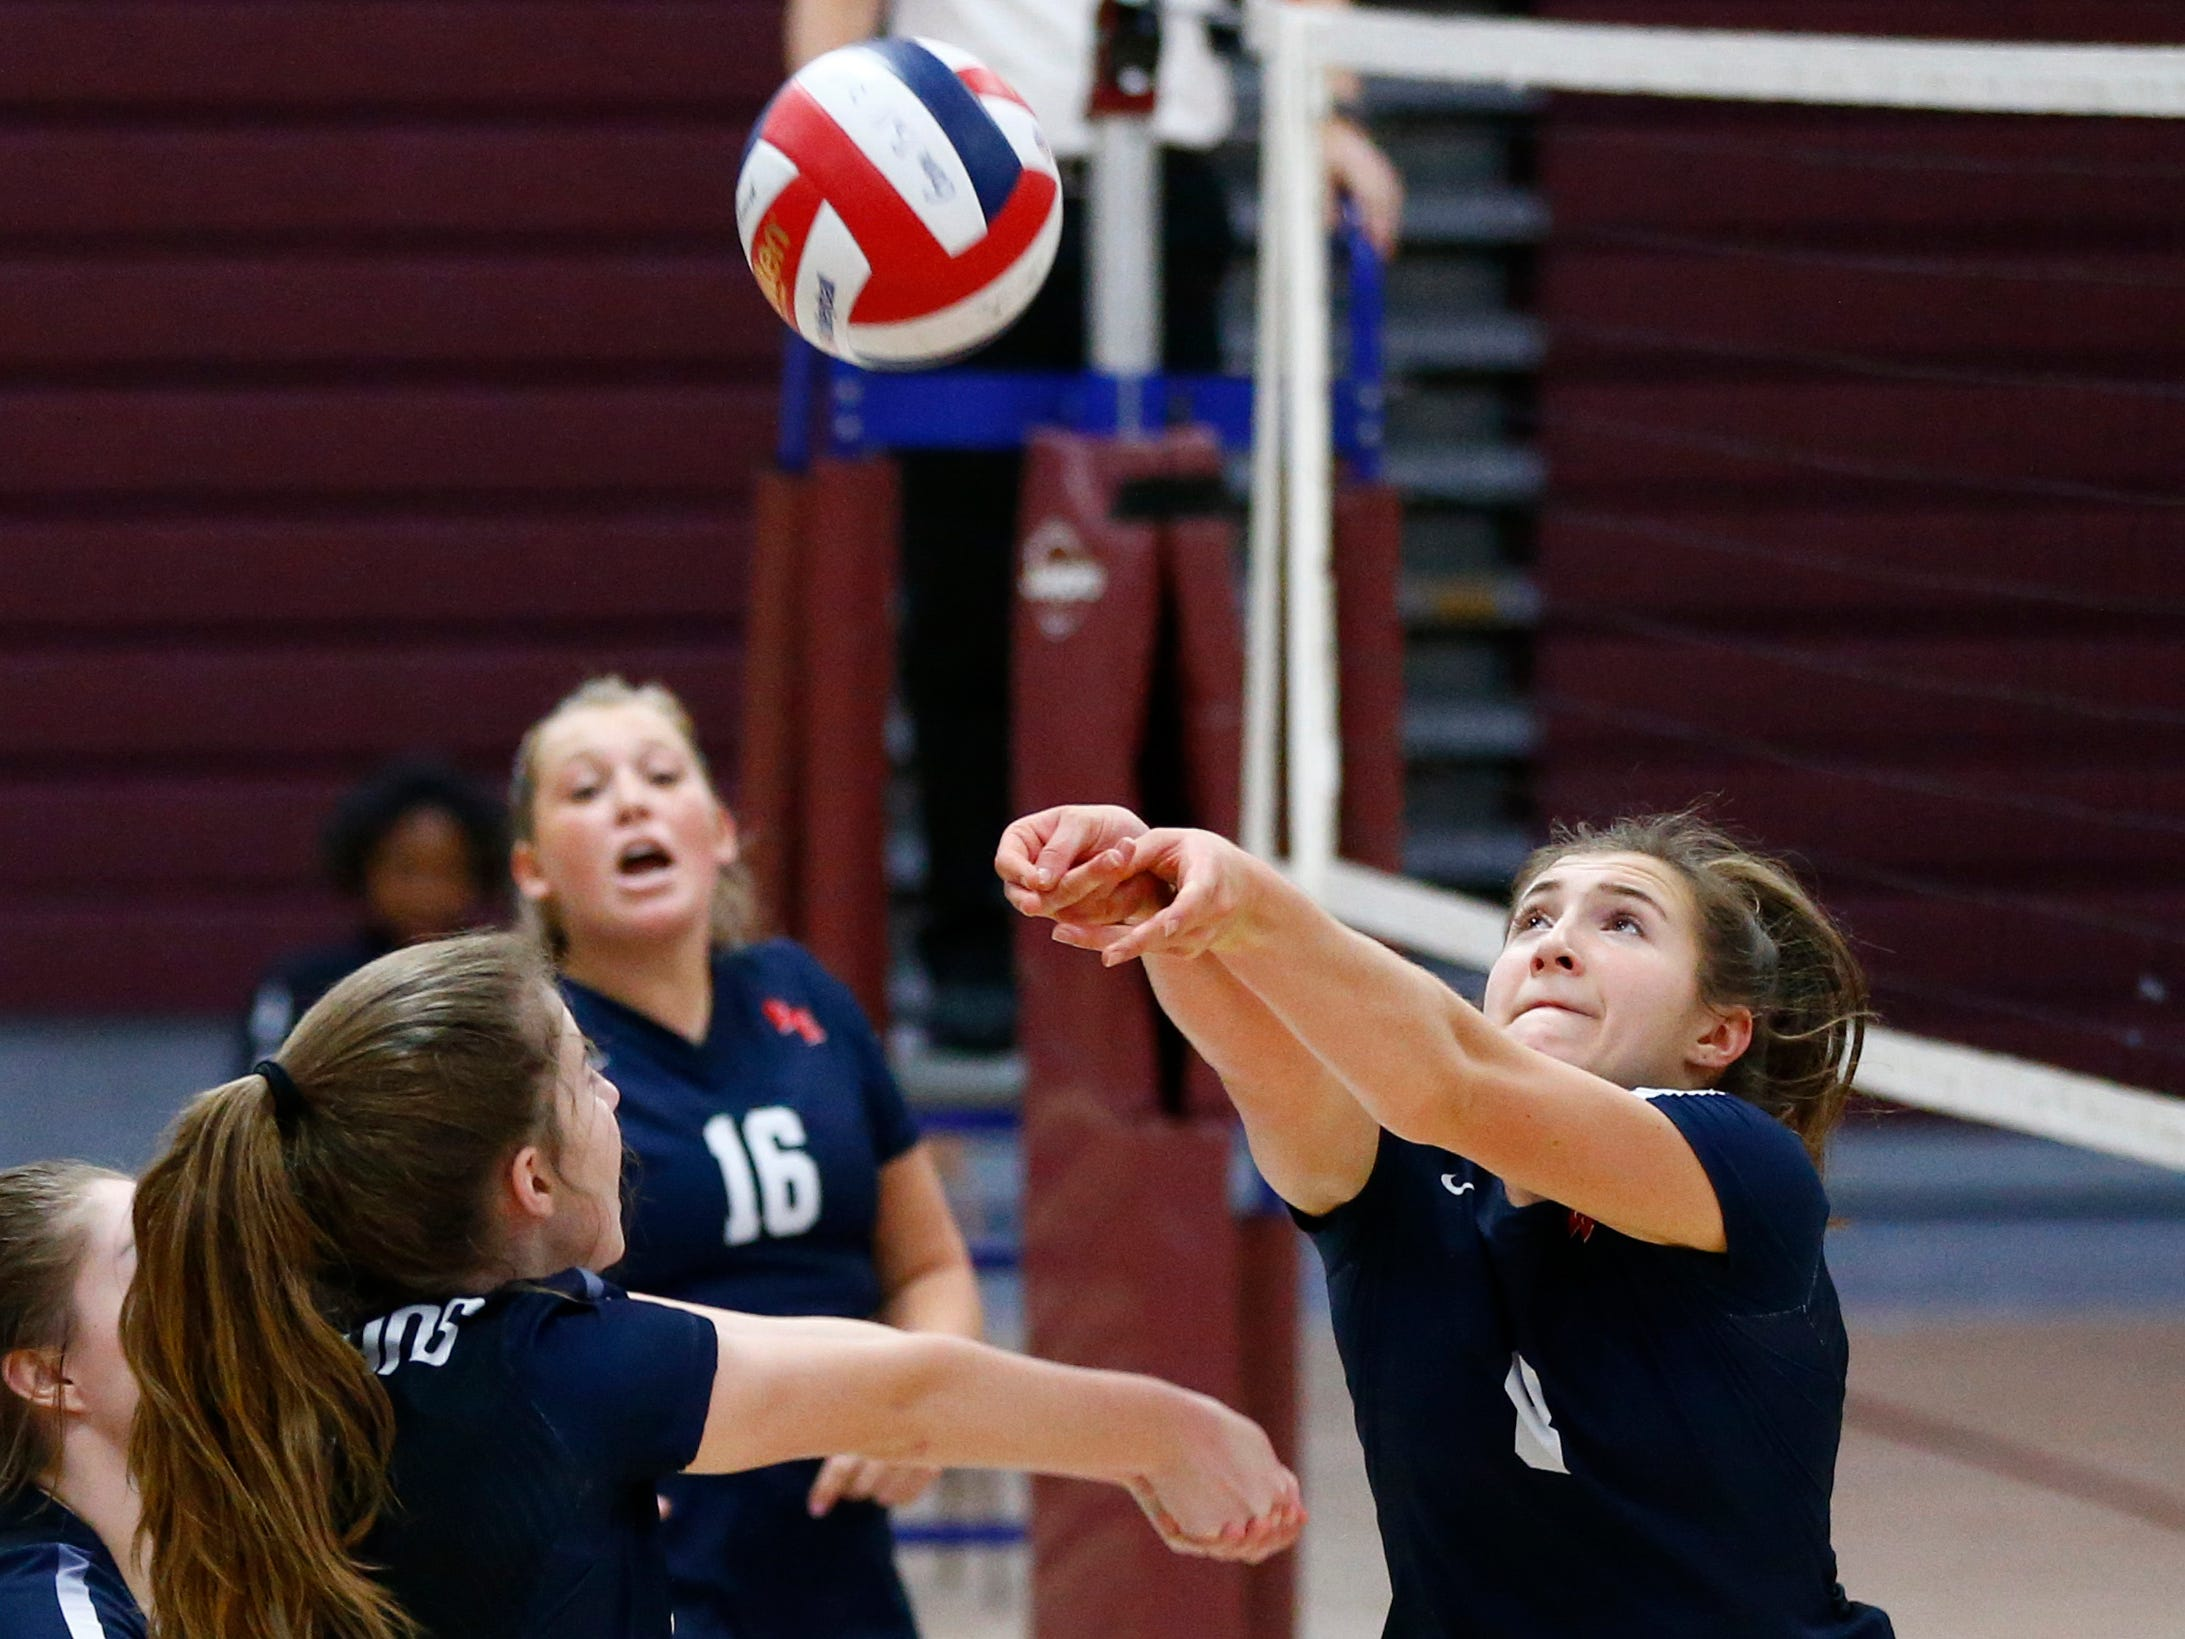 Brookfield East's Riley Kindt bumps the ball at Menomonee Falls on Oct. 11.